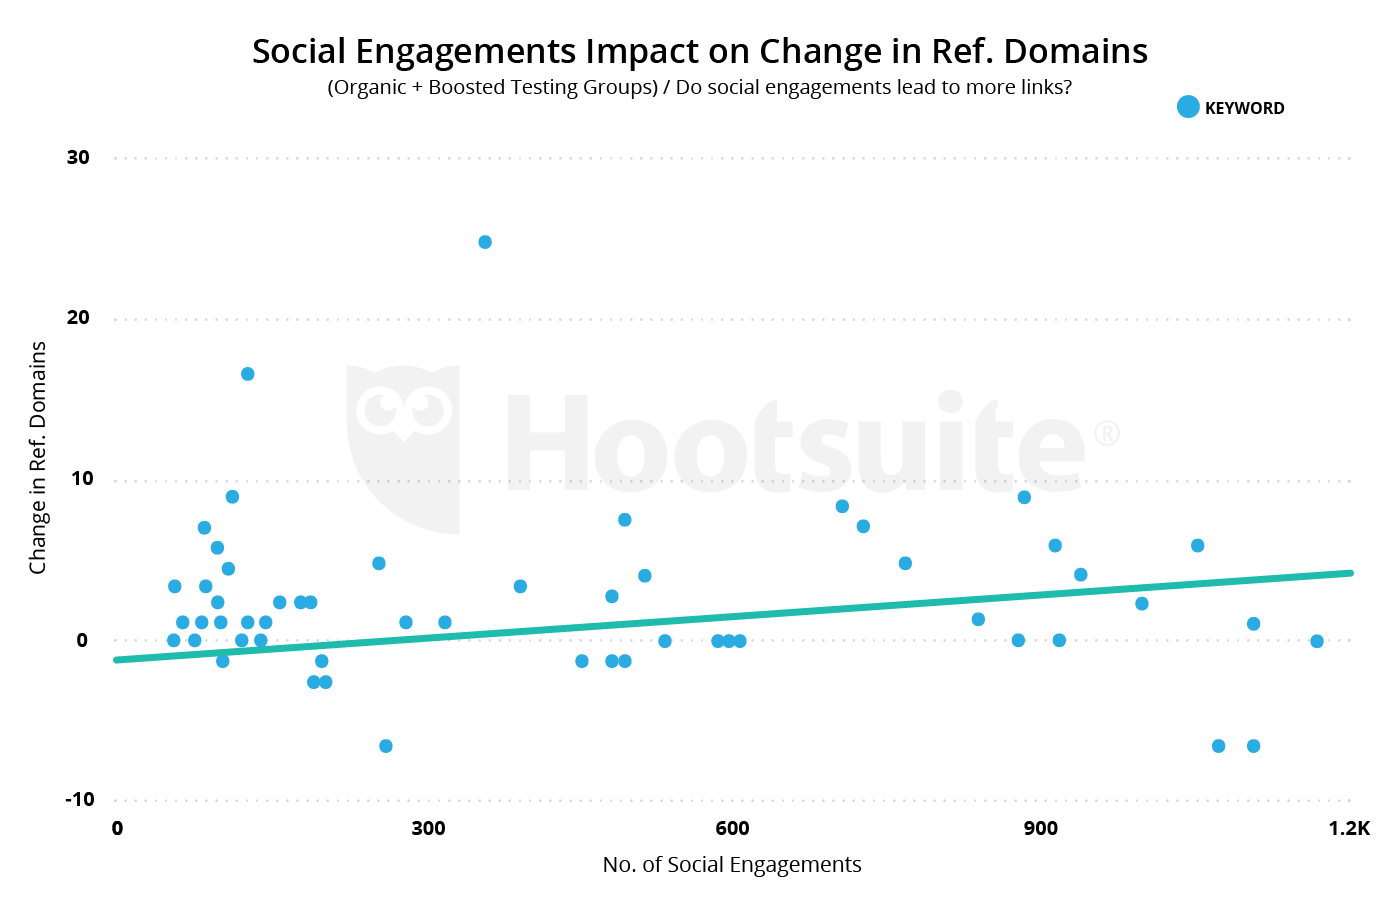 social engagements impact on change in referring domains